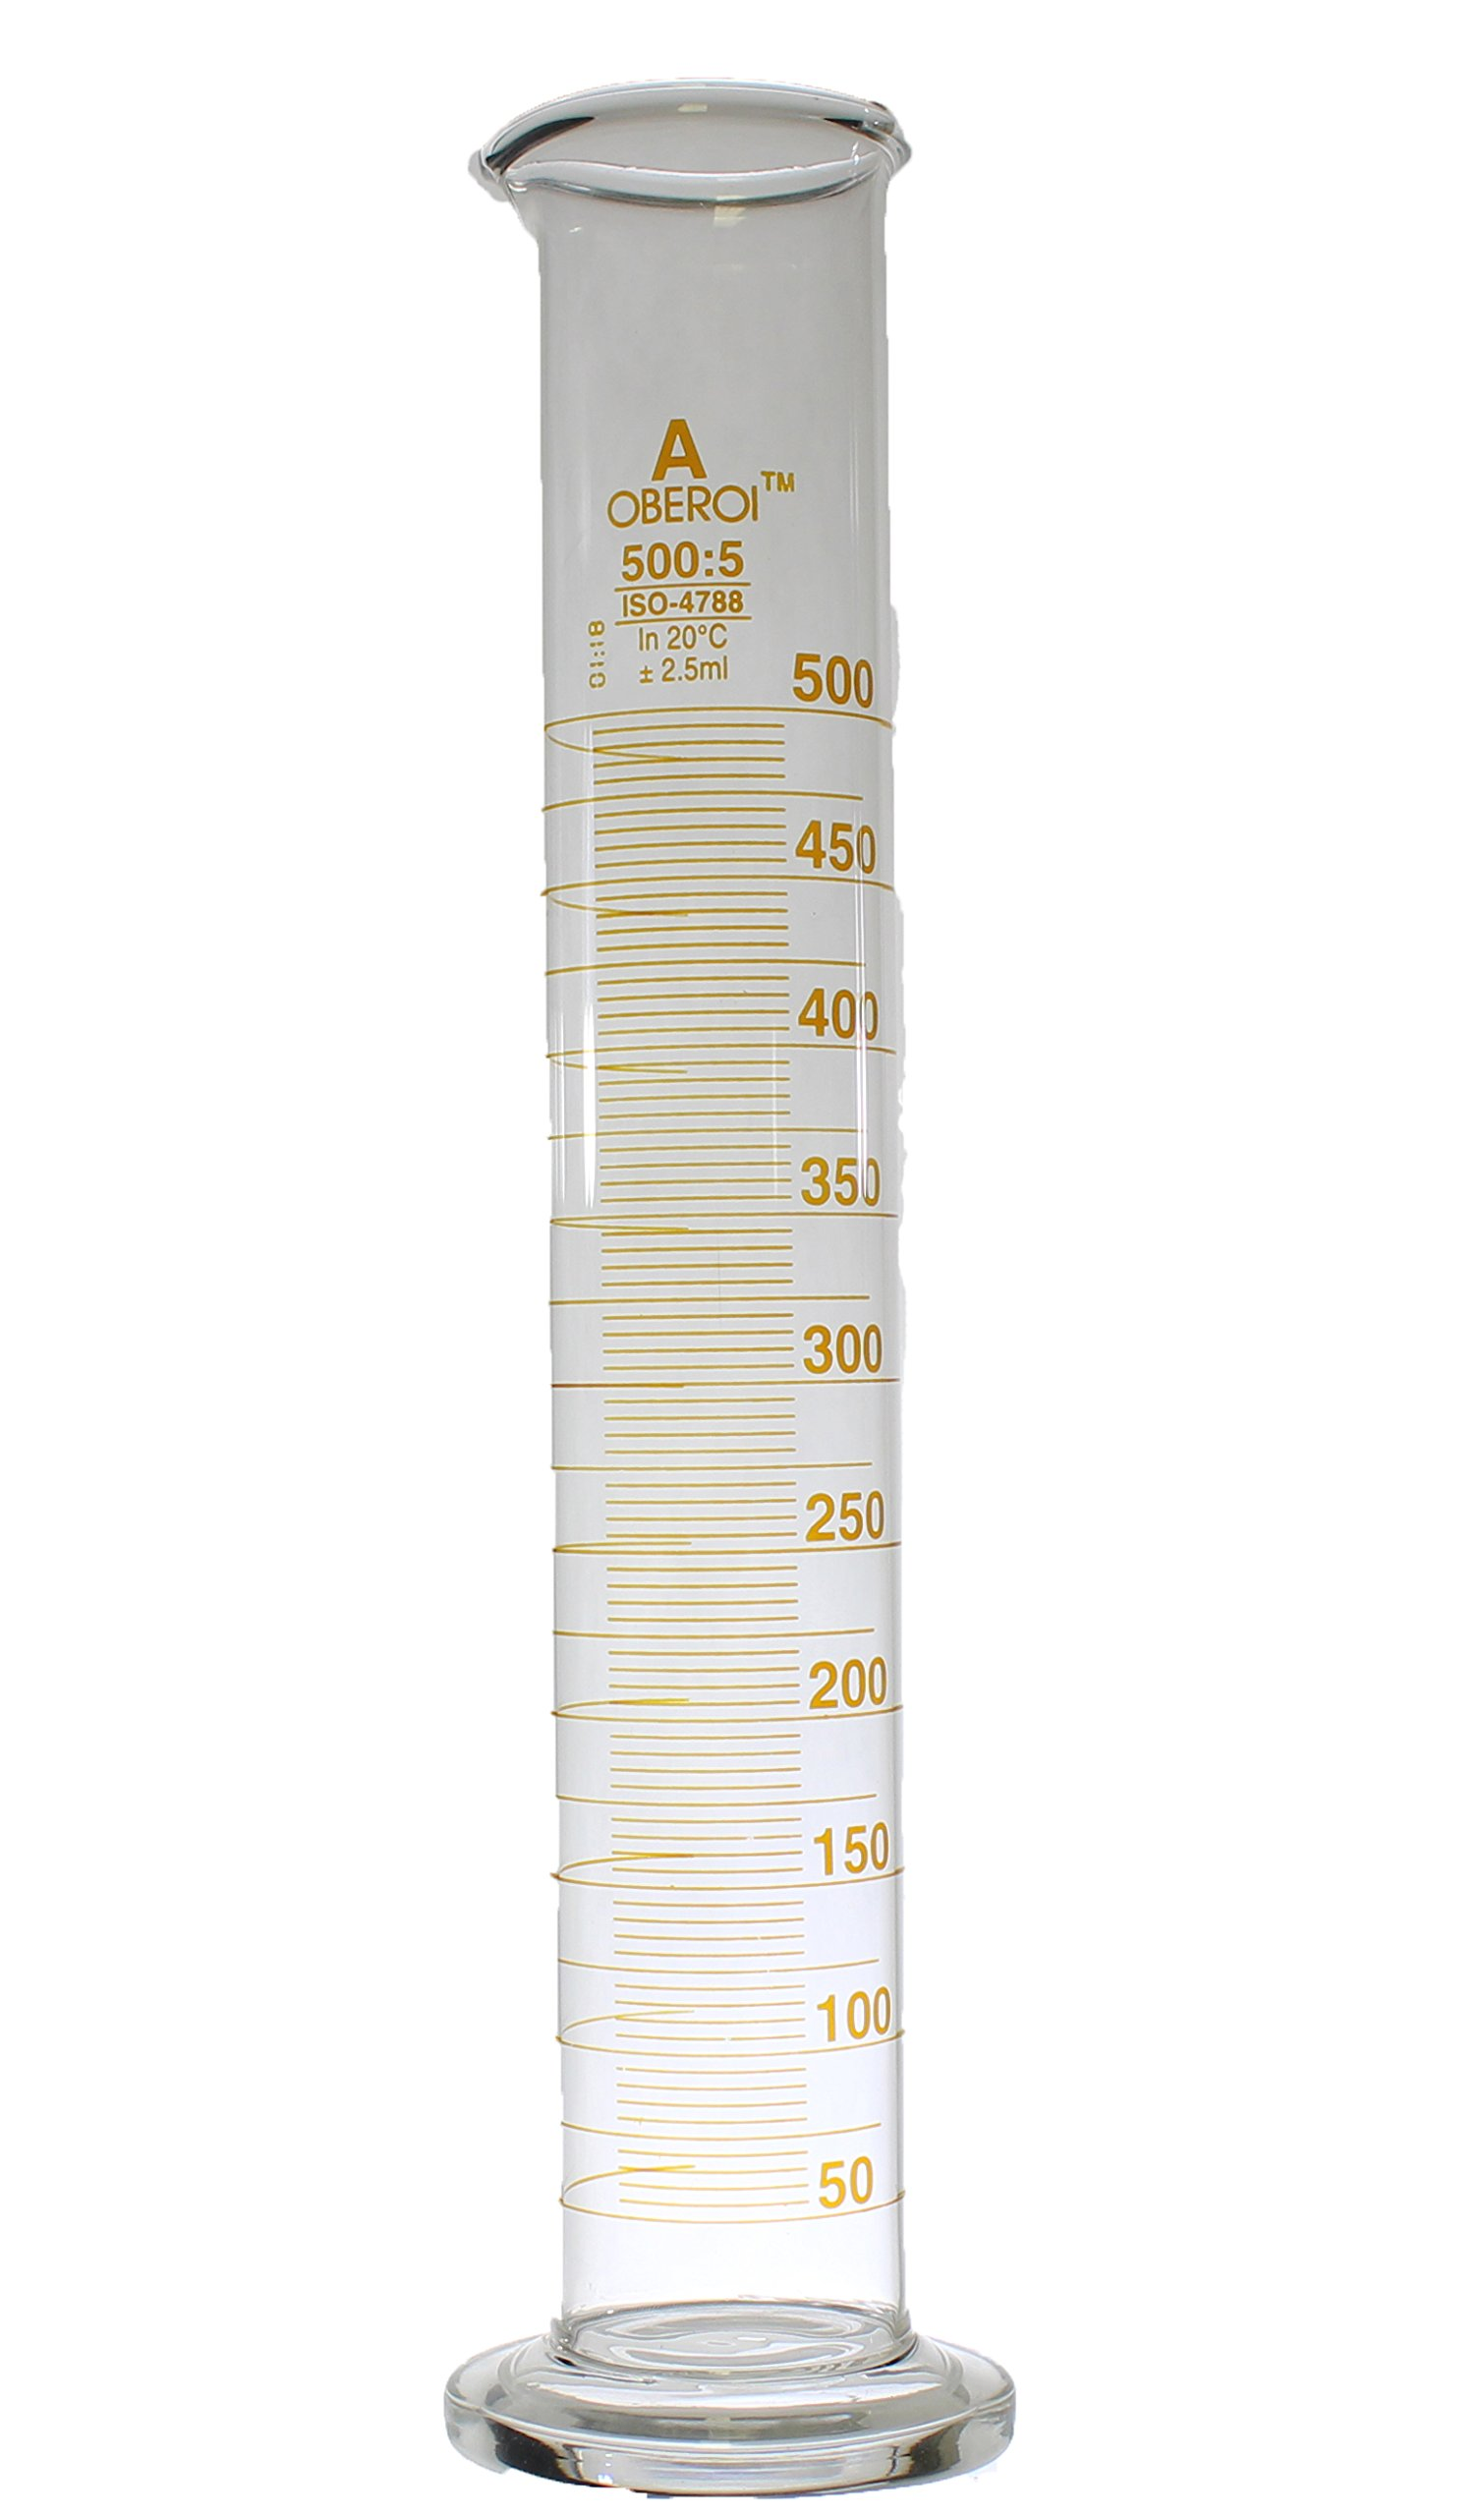 500 ml Graduated Cylinder, Round Base, Class A, Lot Certified